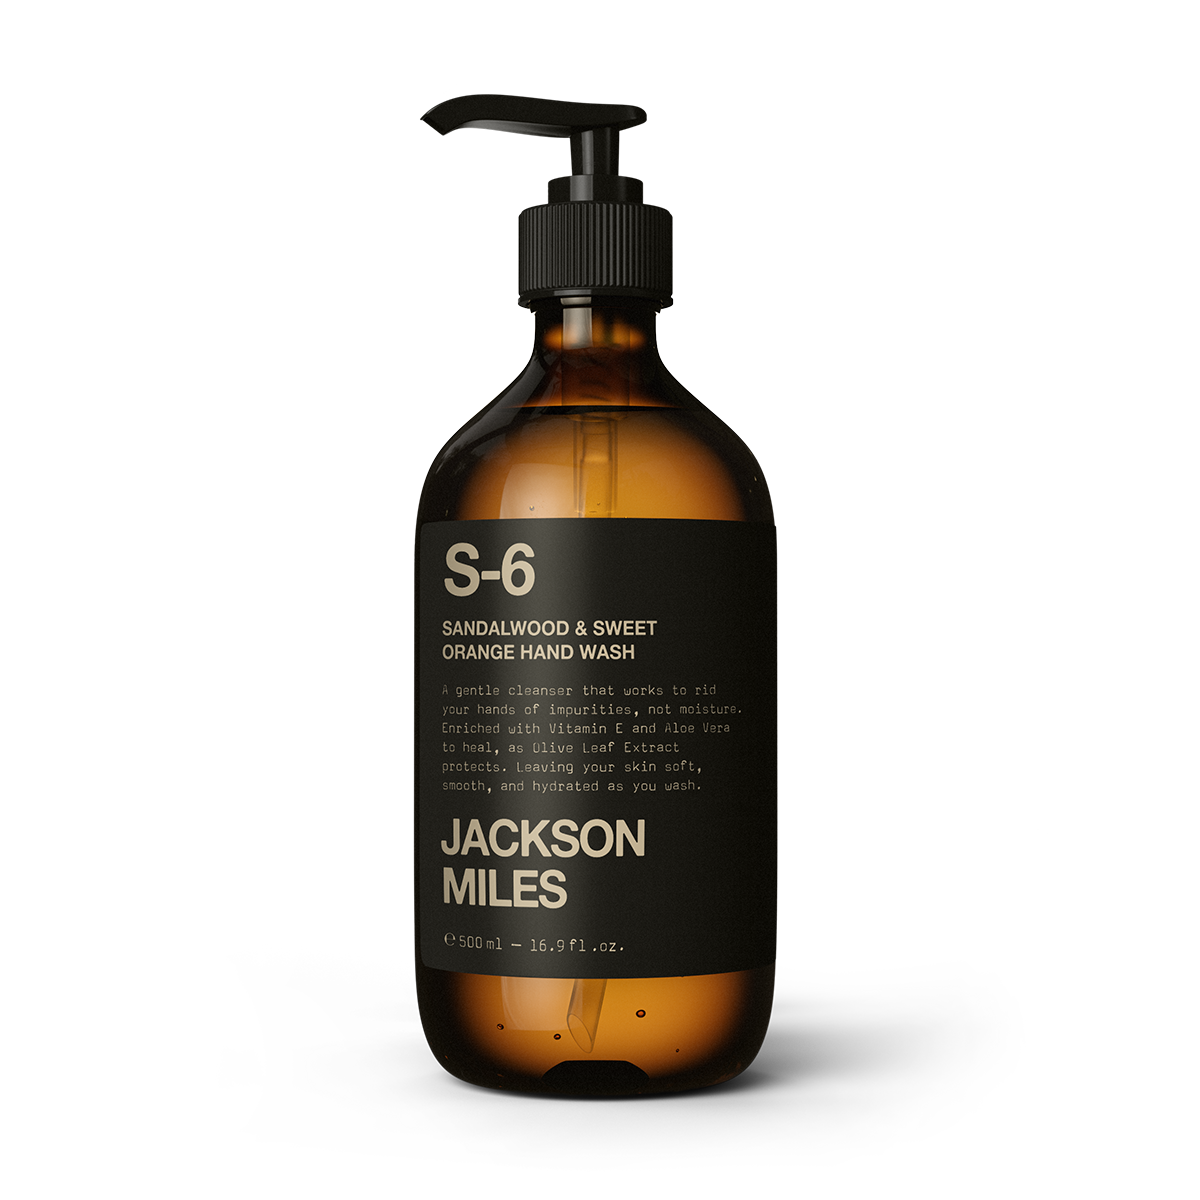 S-6 Sandalwood & Sweet Orange Hand Wash 500ml